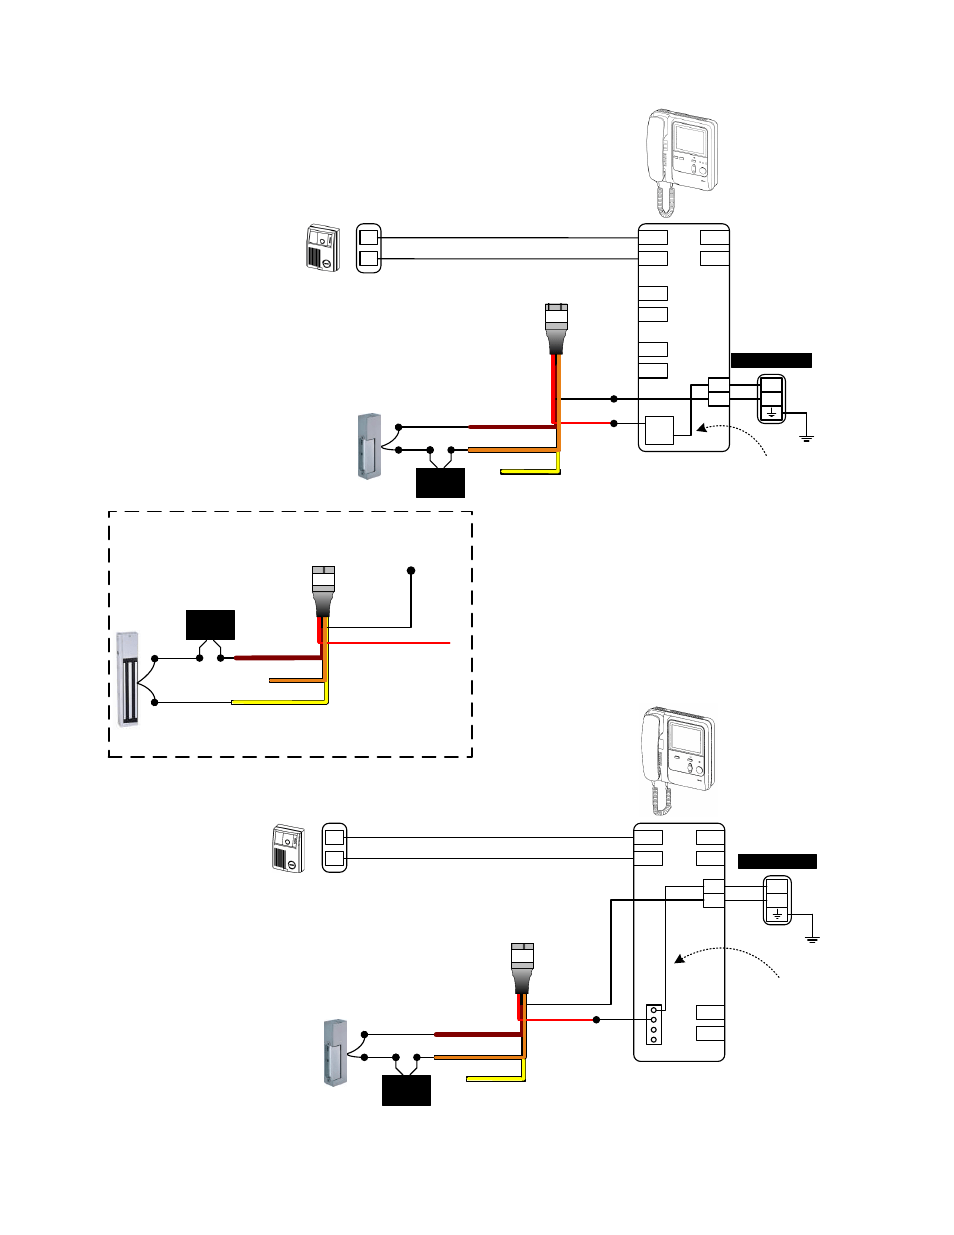 aiphone door release relay module ry 24l page2?resize\=665%2C861 wiring diagram hid edge solo 5 pin relay wiring diagram, led von duprin wiring diagram at edmiracle.co